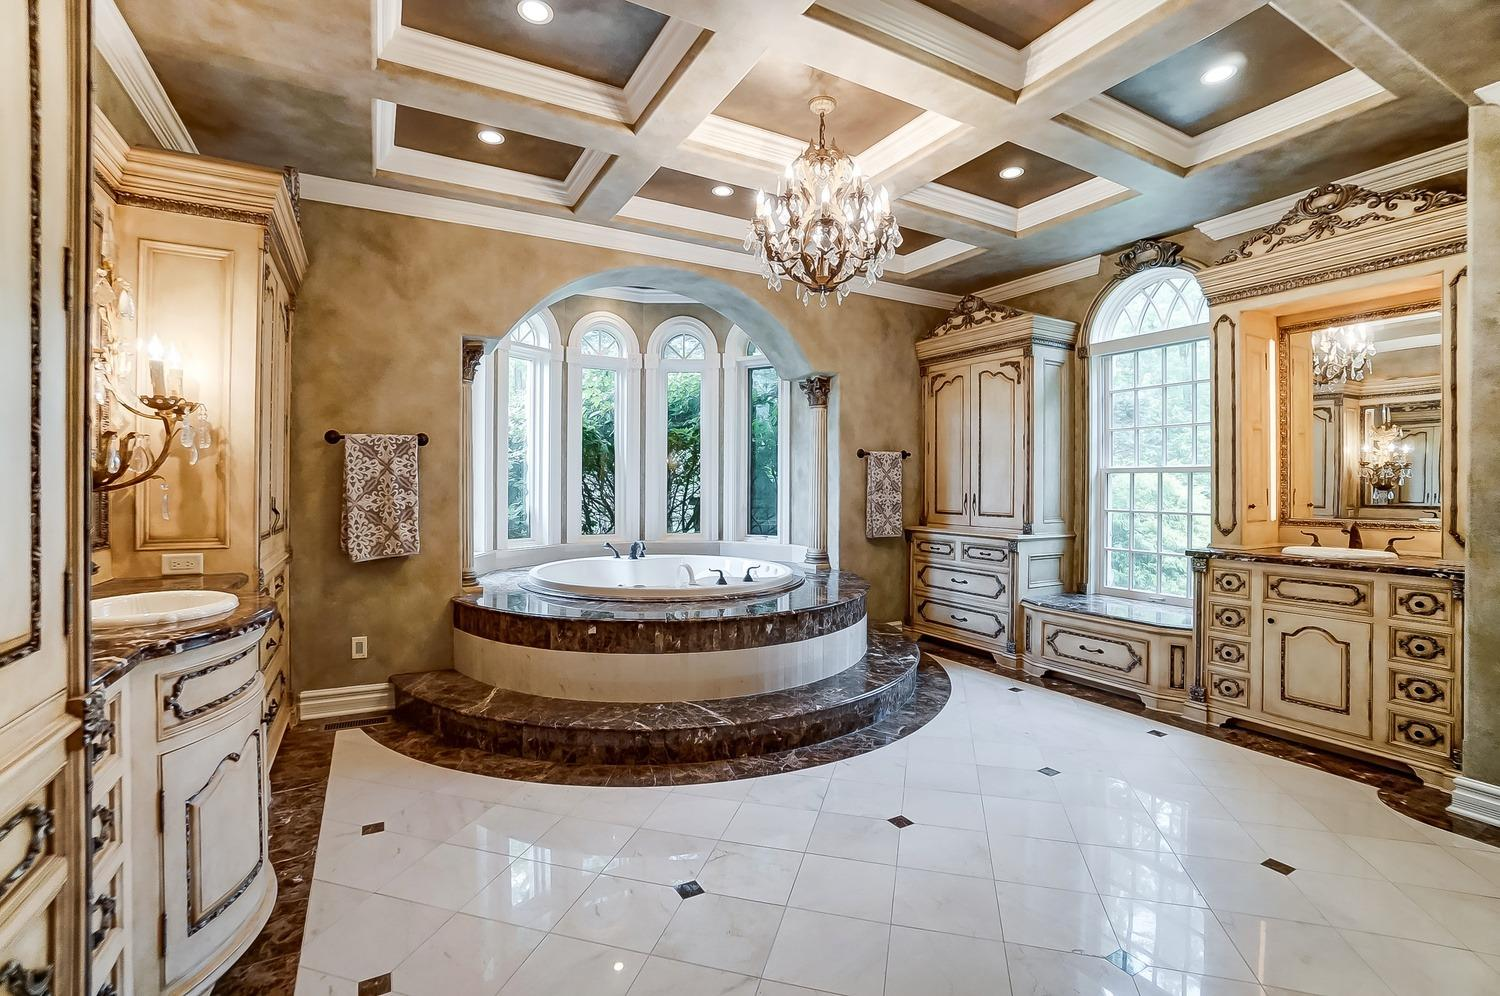 The master bathroom has a his-and-hers vanity area, a towel-warming drawer, all marble floors, a walk-in shower/steam room with seats, body sprays and rain heads and a two person